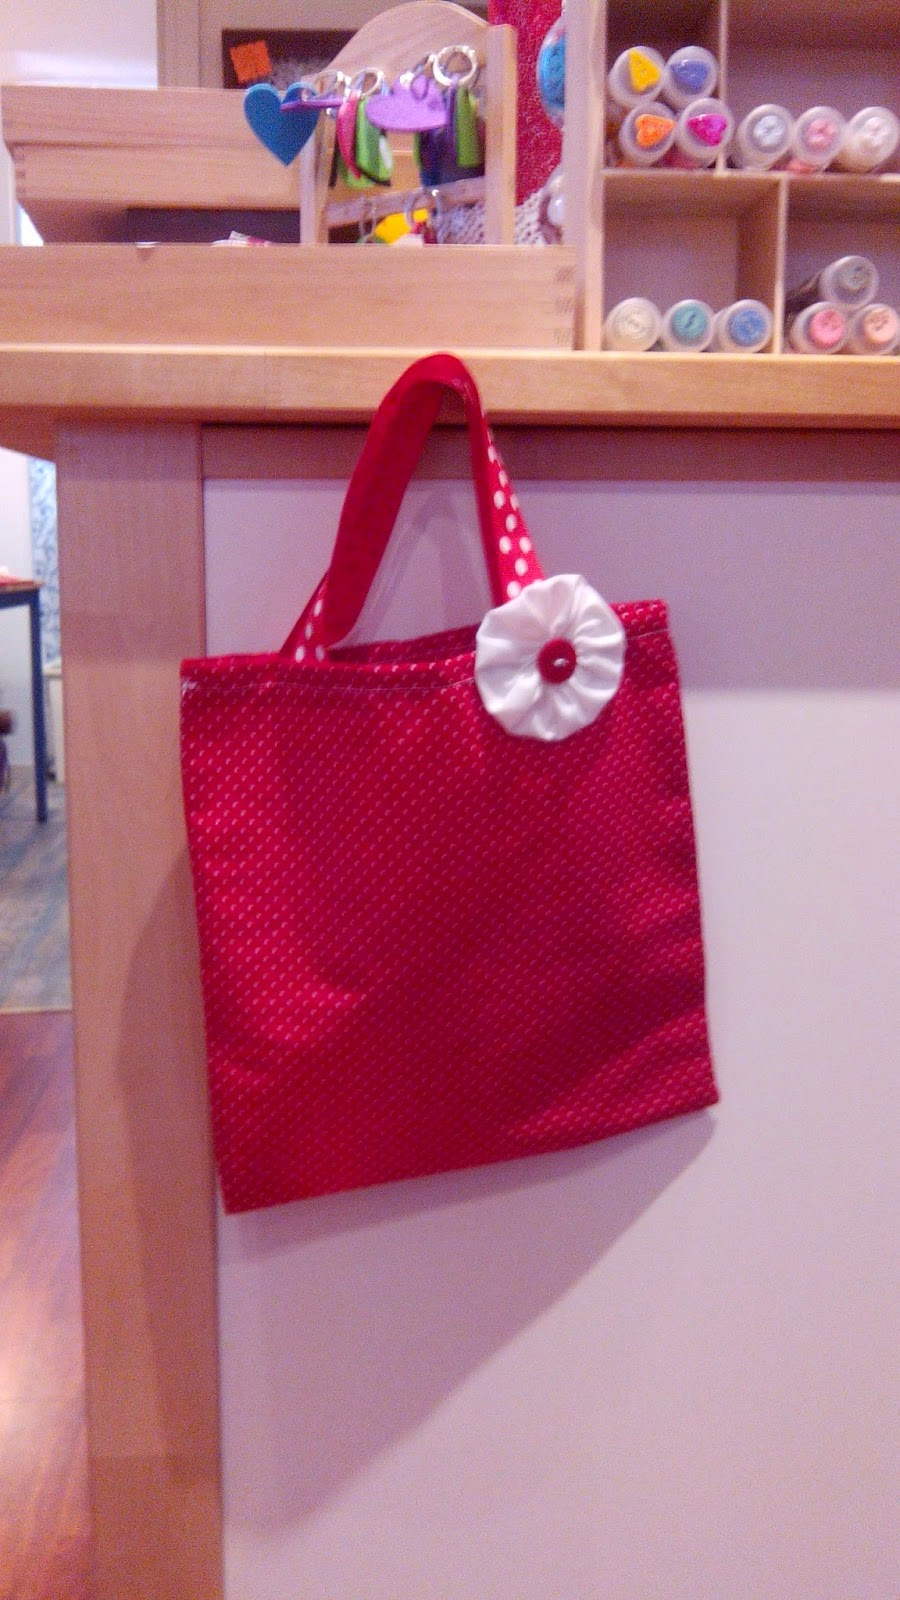 Couture en atelier sac tote bag rouge